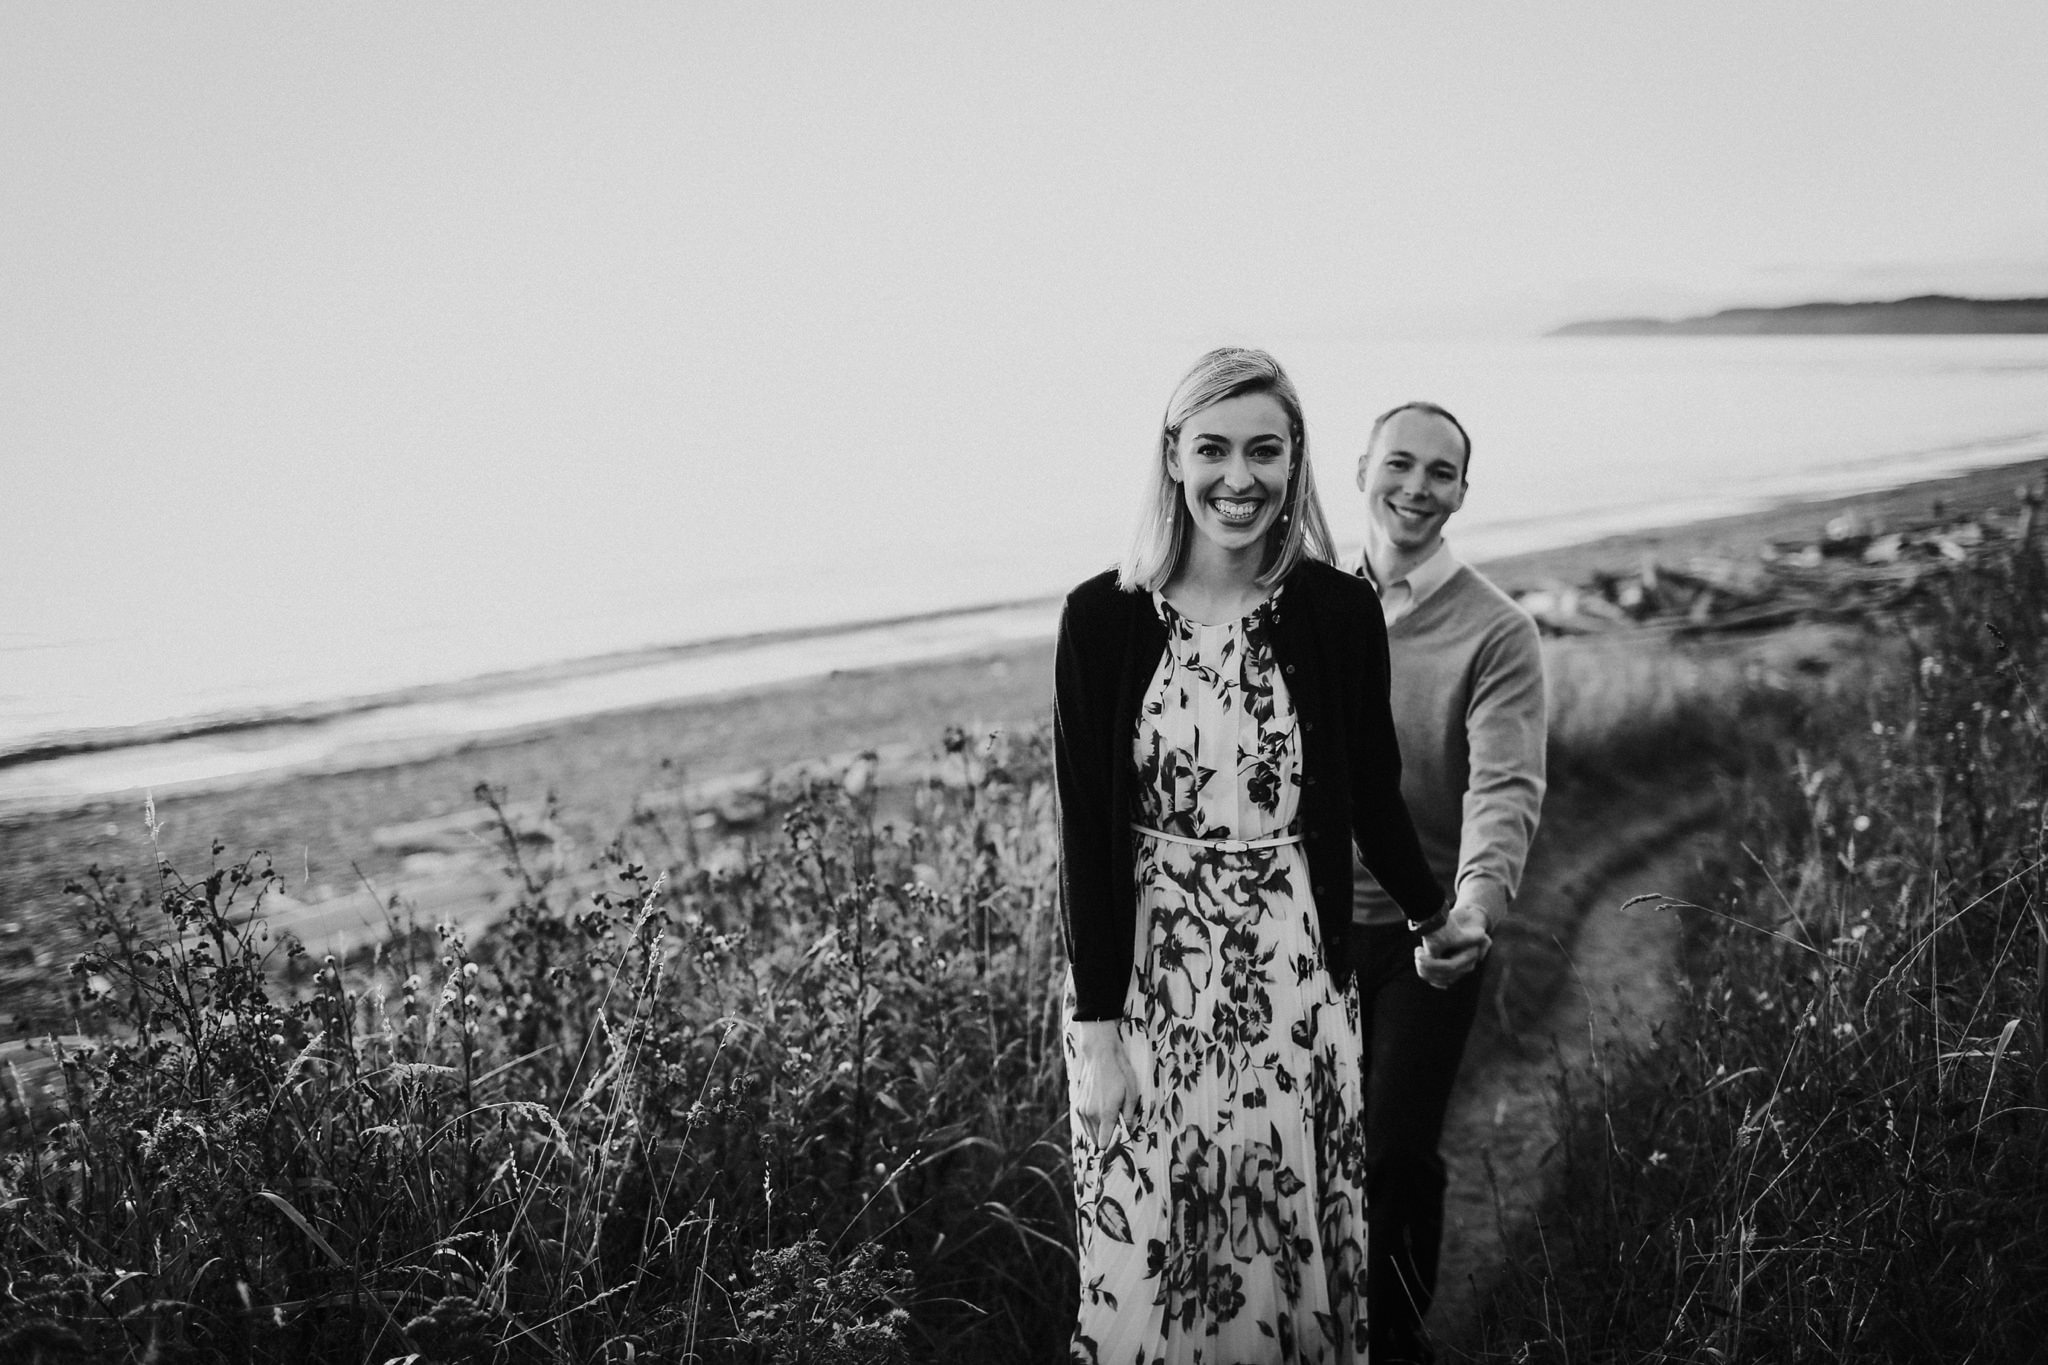 Whidbey-Island-Family-Photographer-Kara-Chappell-Photography_0989.jpg